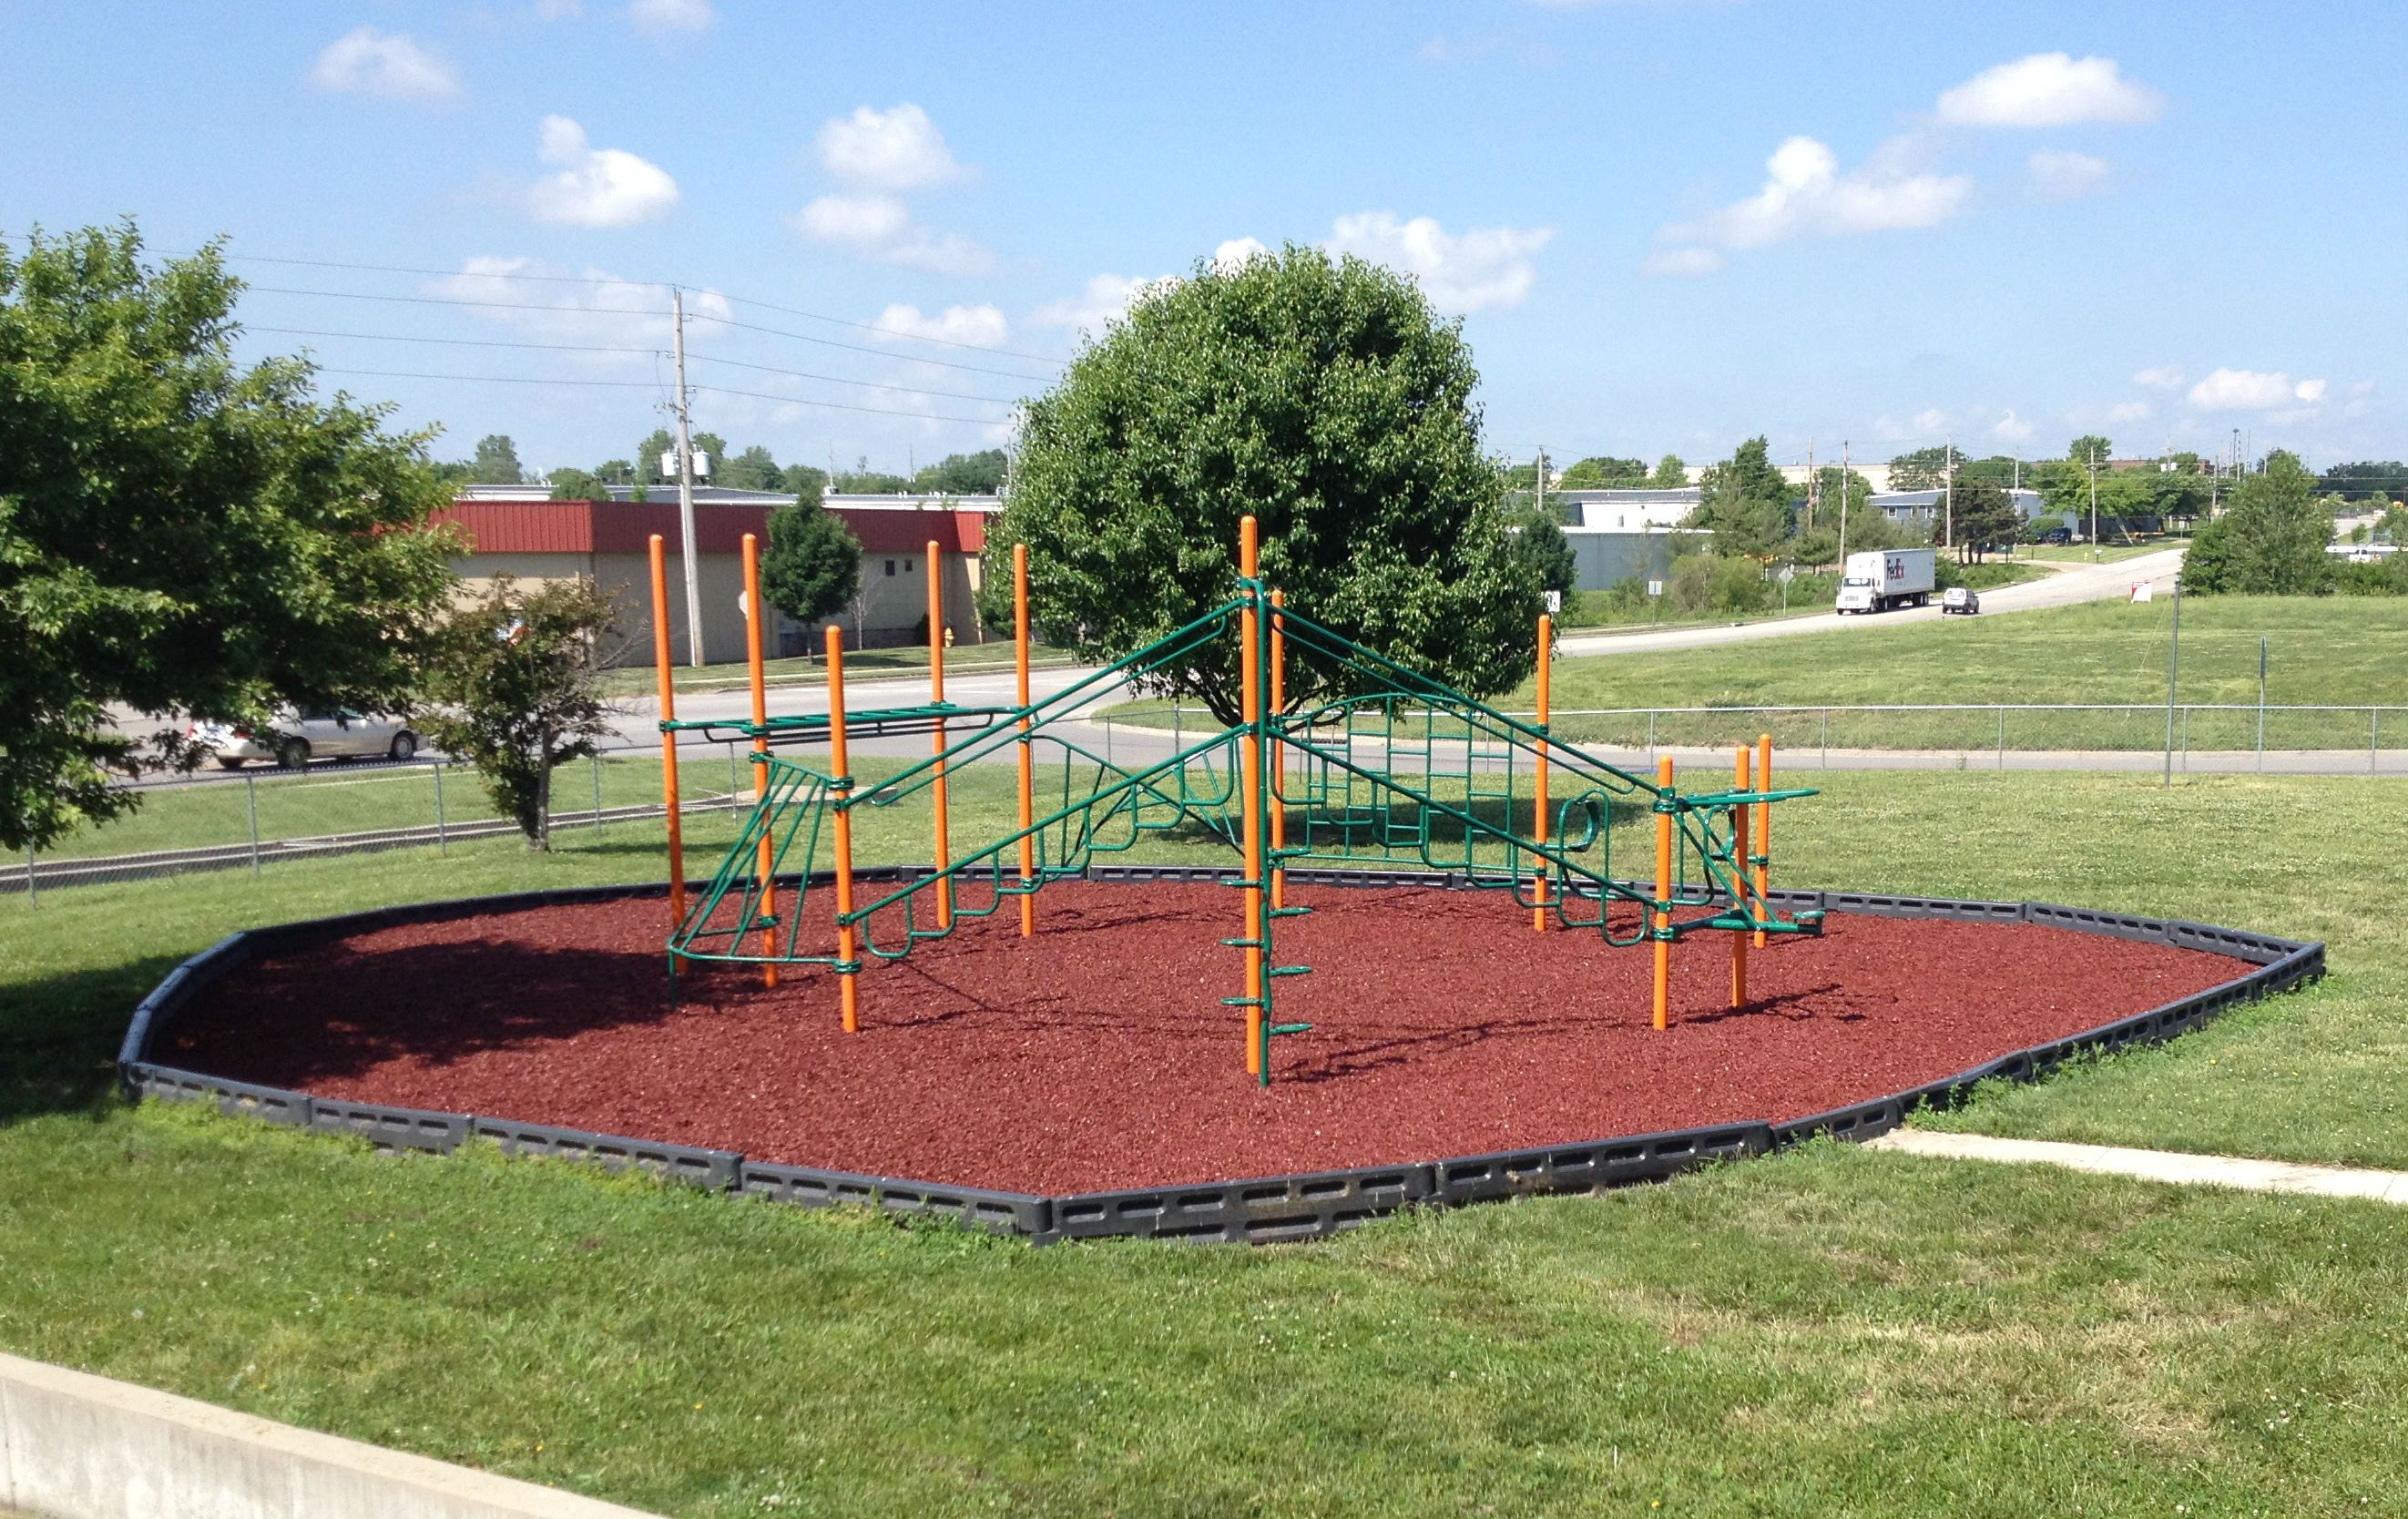 55 Plus Mobile Home Parks Near Me With Playground Mulch